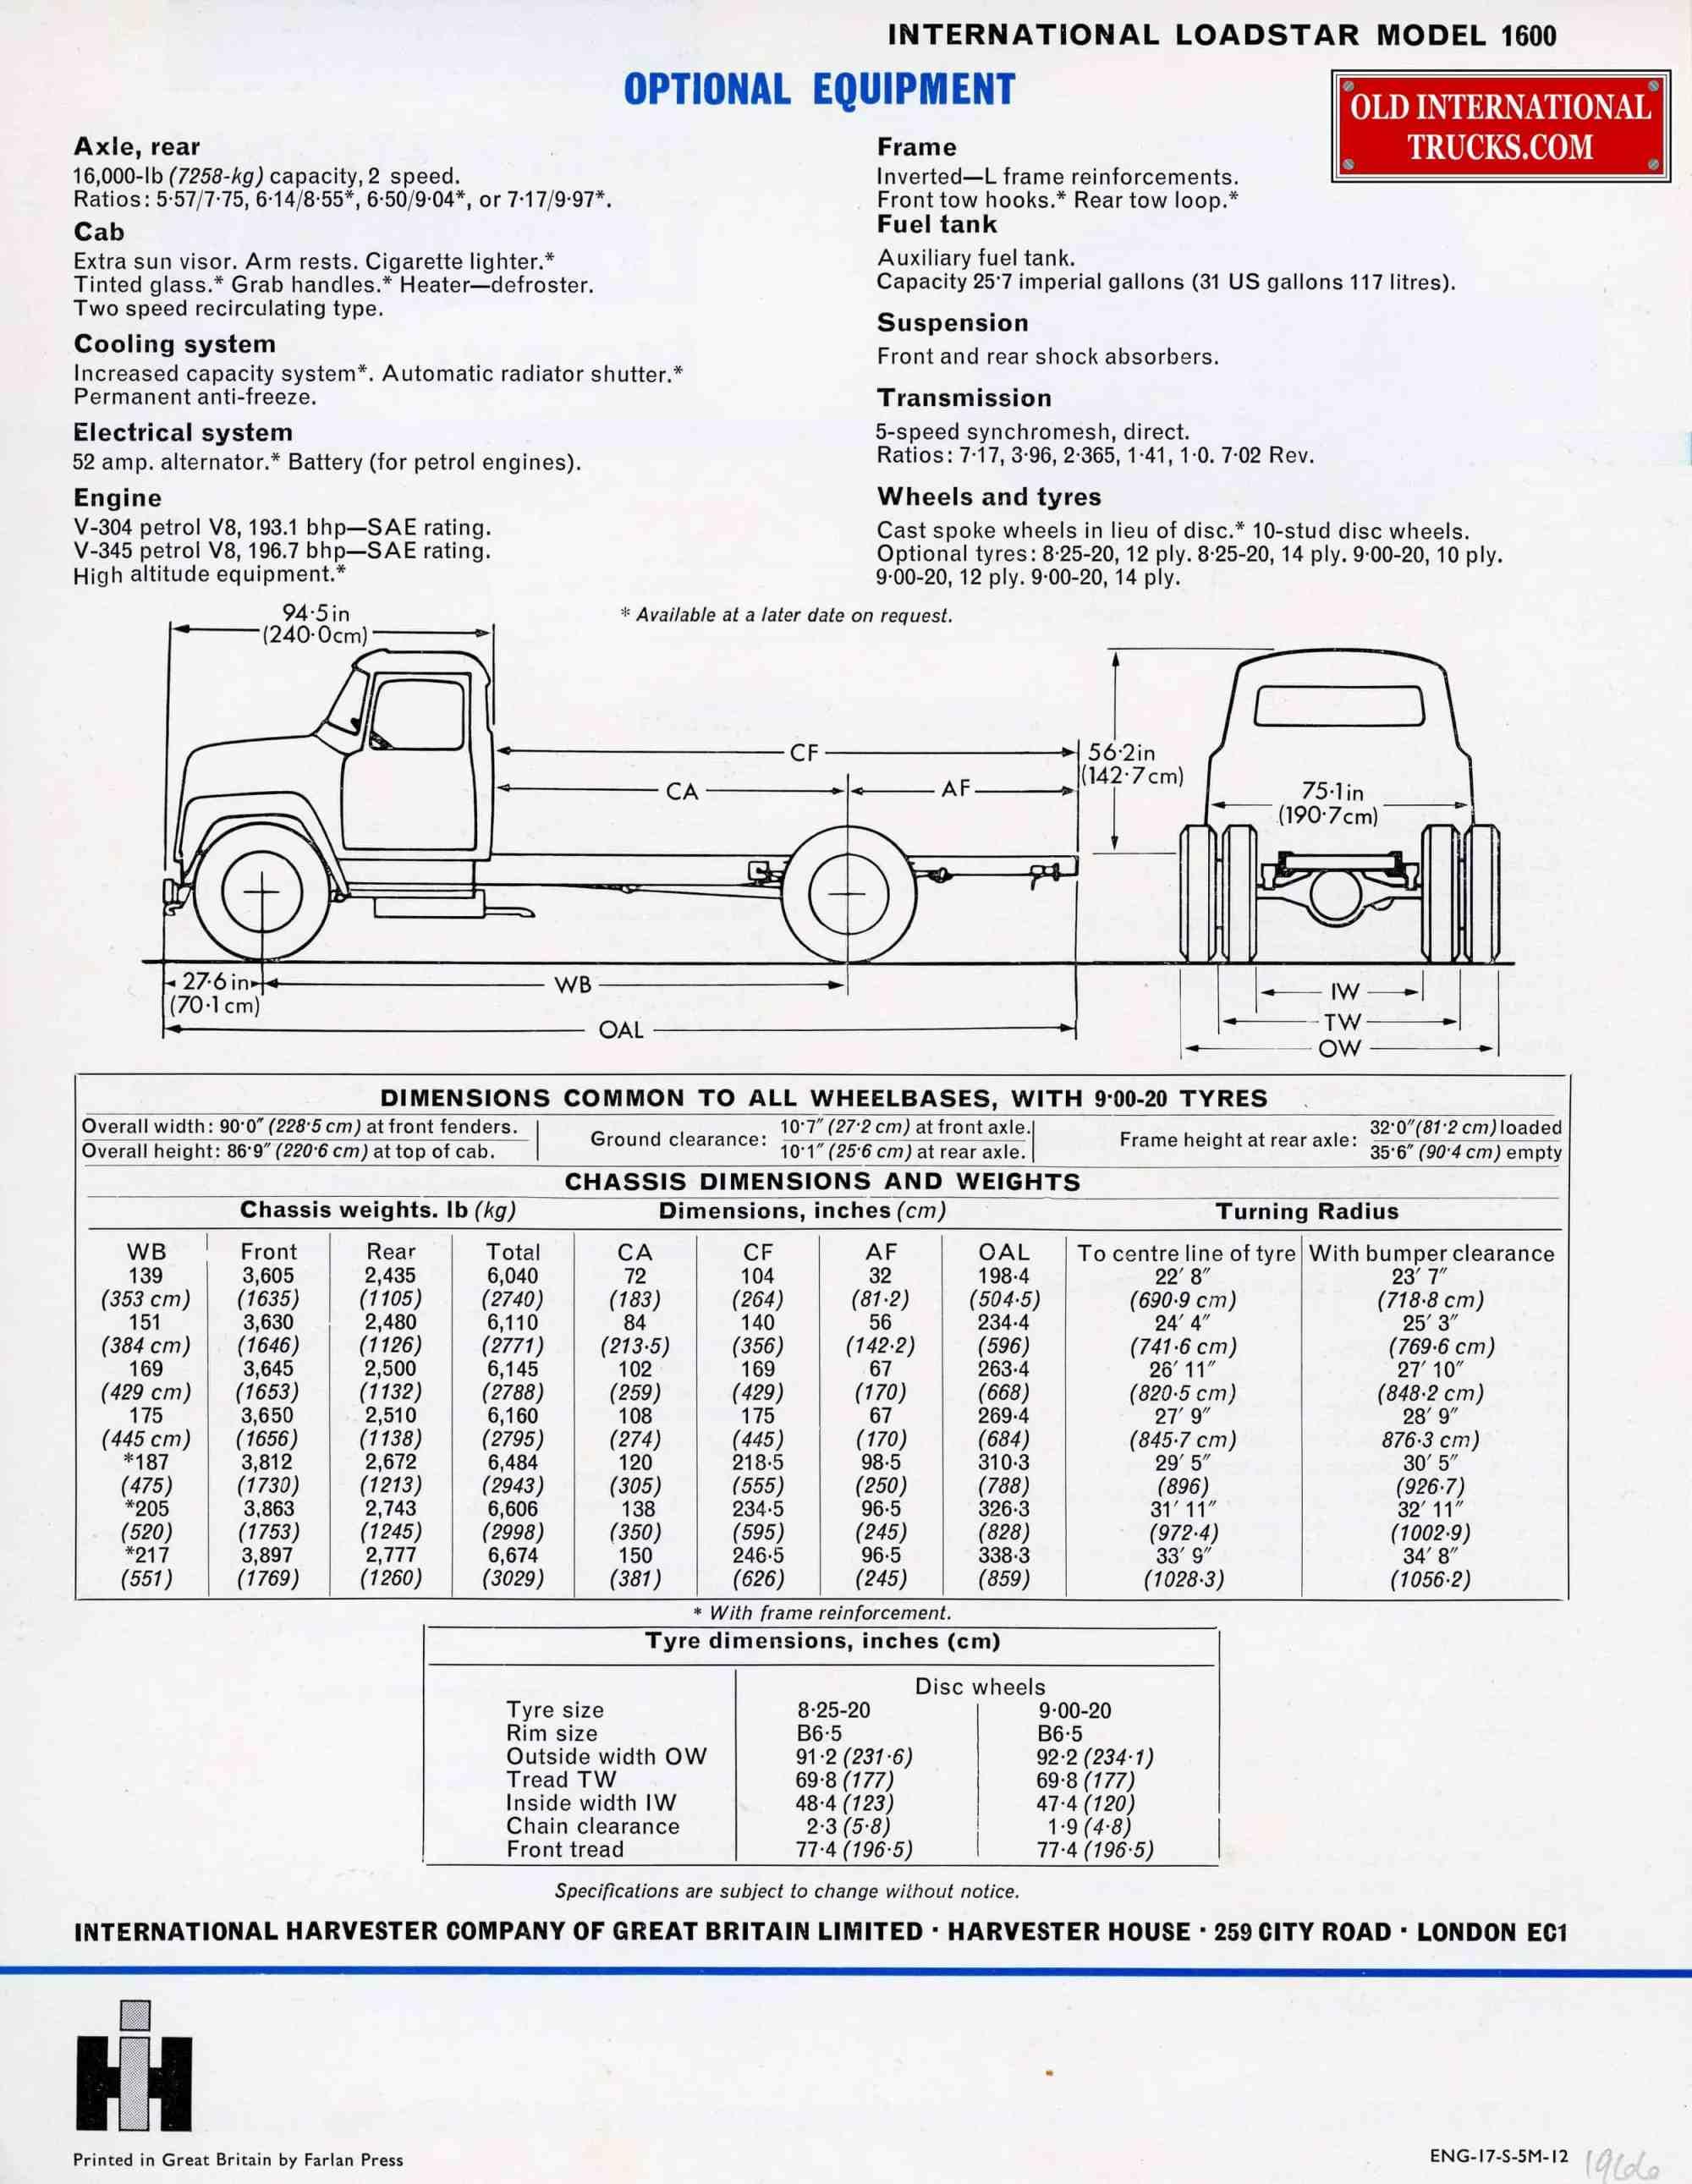 hight resolution of international loadstar 1700 wiring diagrams wiring libraryinternational loadstar 1600 optional equipment from great britain